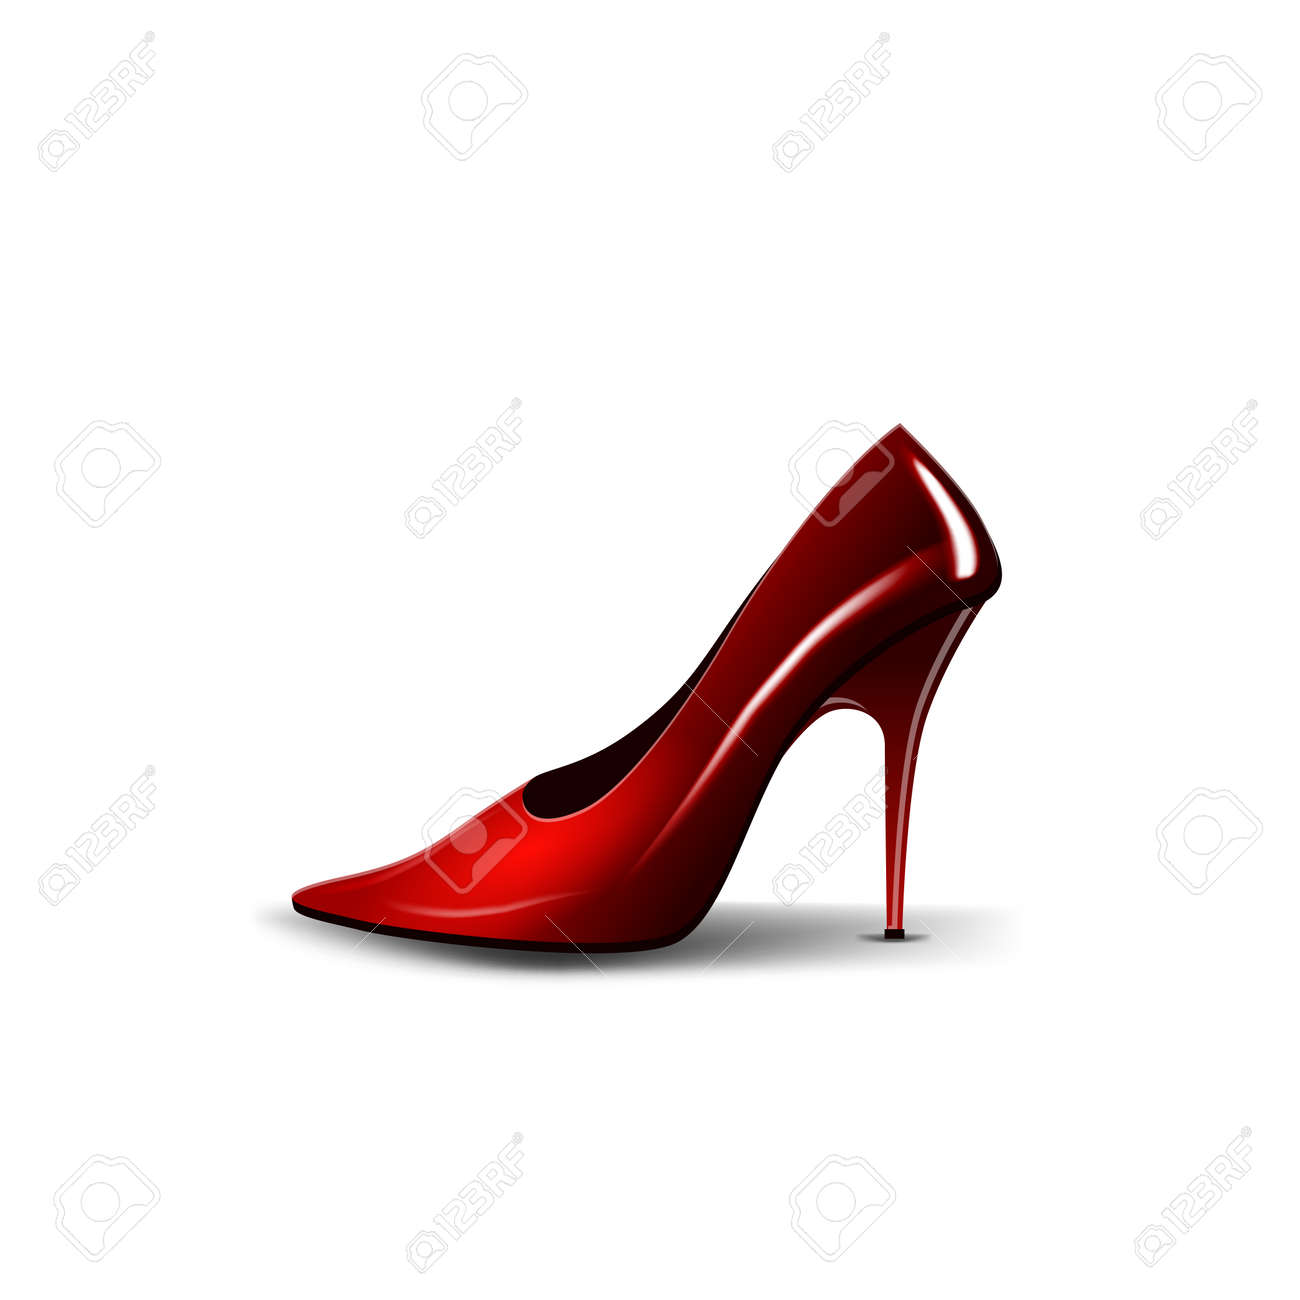 Womens red Shoe isolated on white background for your creativity - 166960246